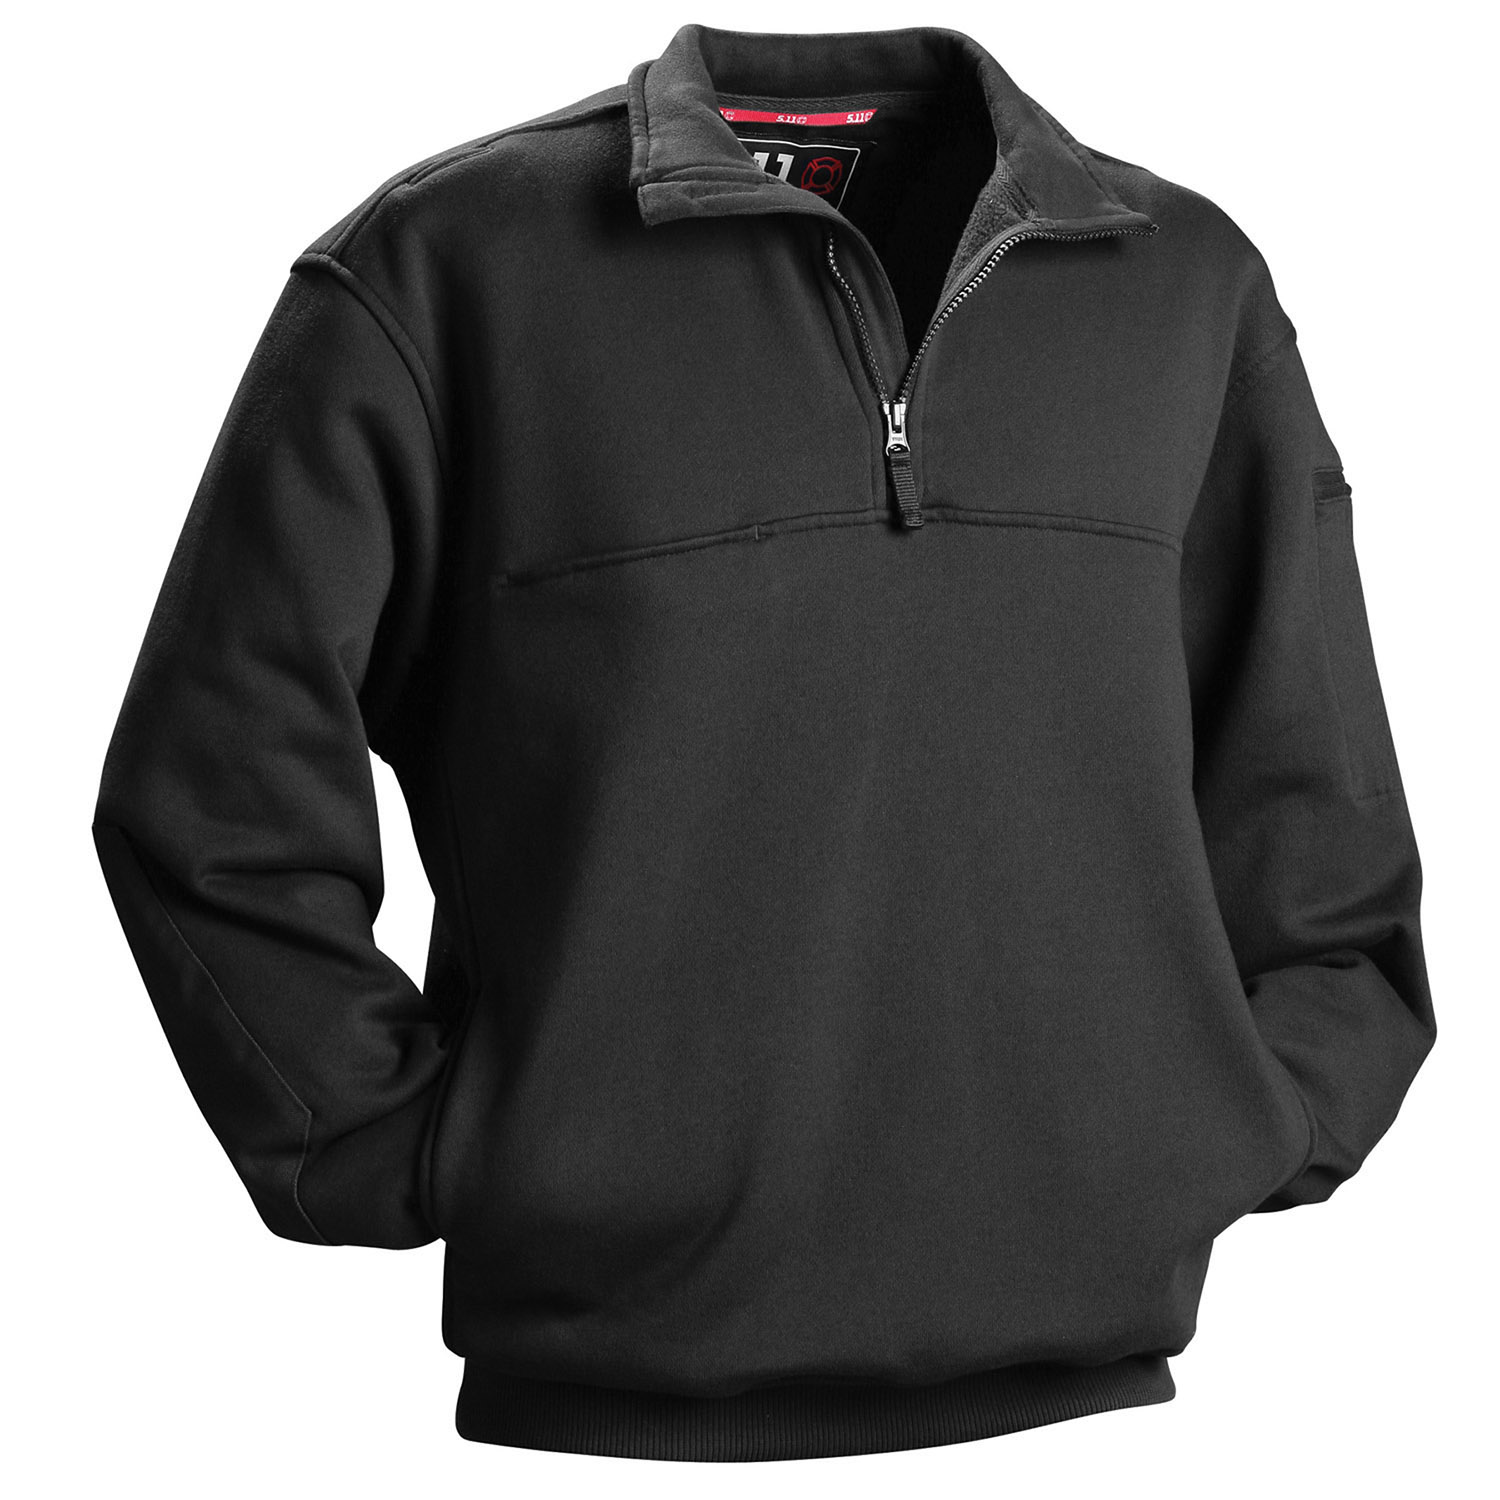 5.11 Tactical Firefighter Quarter-Zip Job Shirt